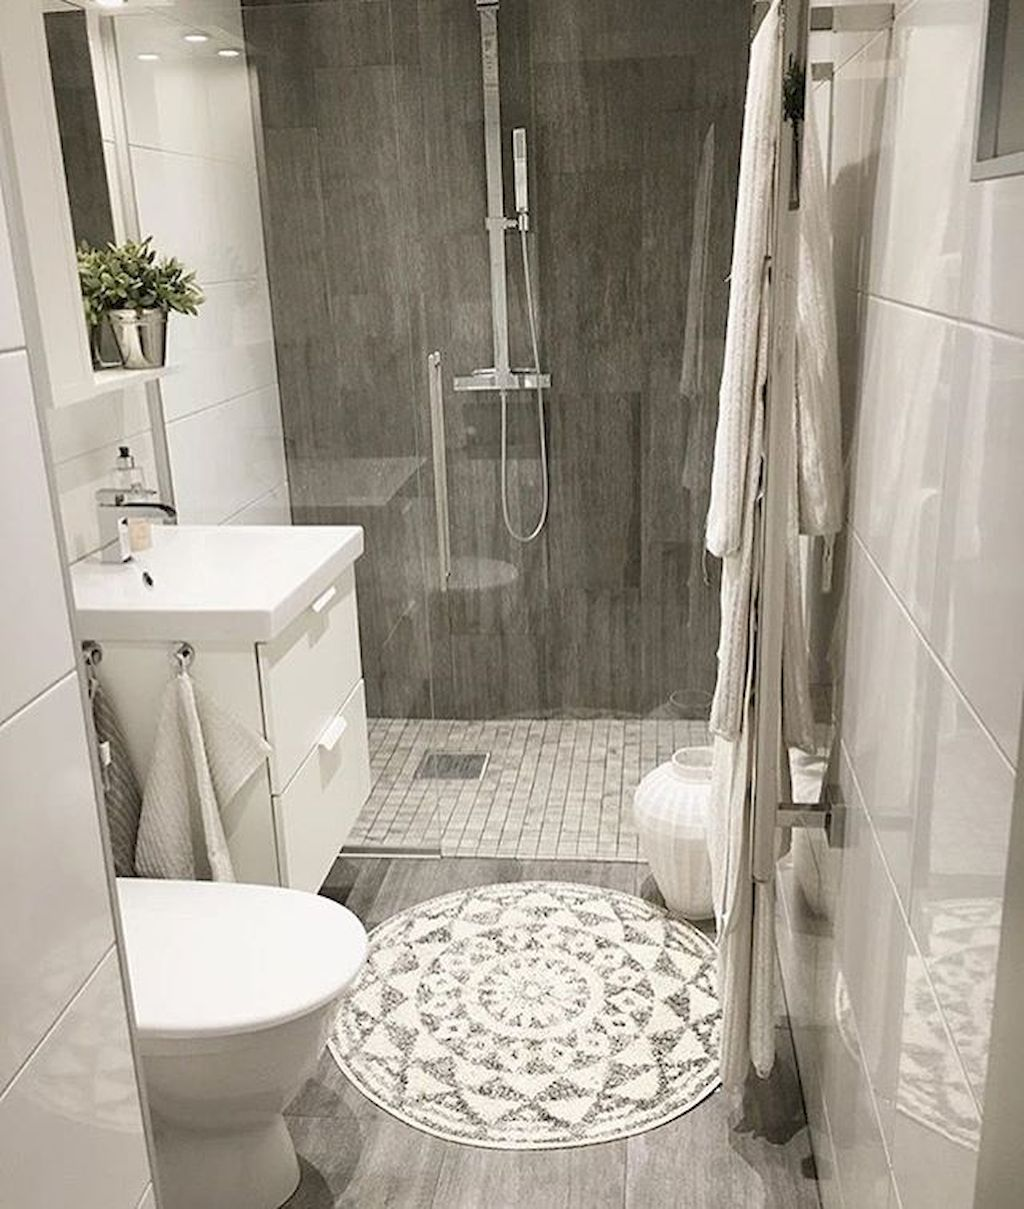 How To Make Your Room Look Spacious 7 Tiny Home Bathrooms Design Ideas That Anyone Can Do Small Bathroom Small Bathroom Decor